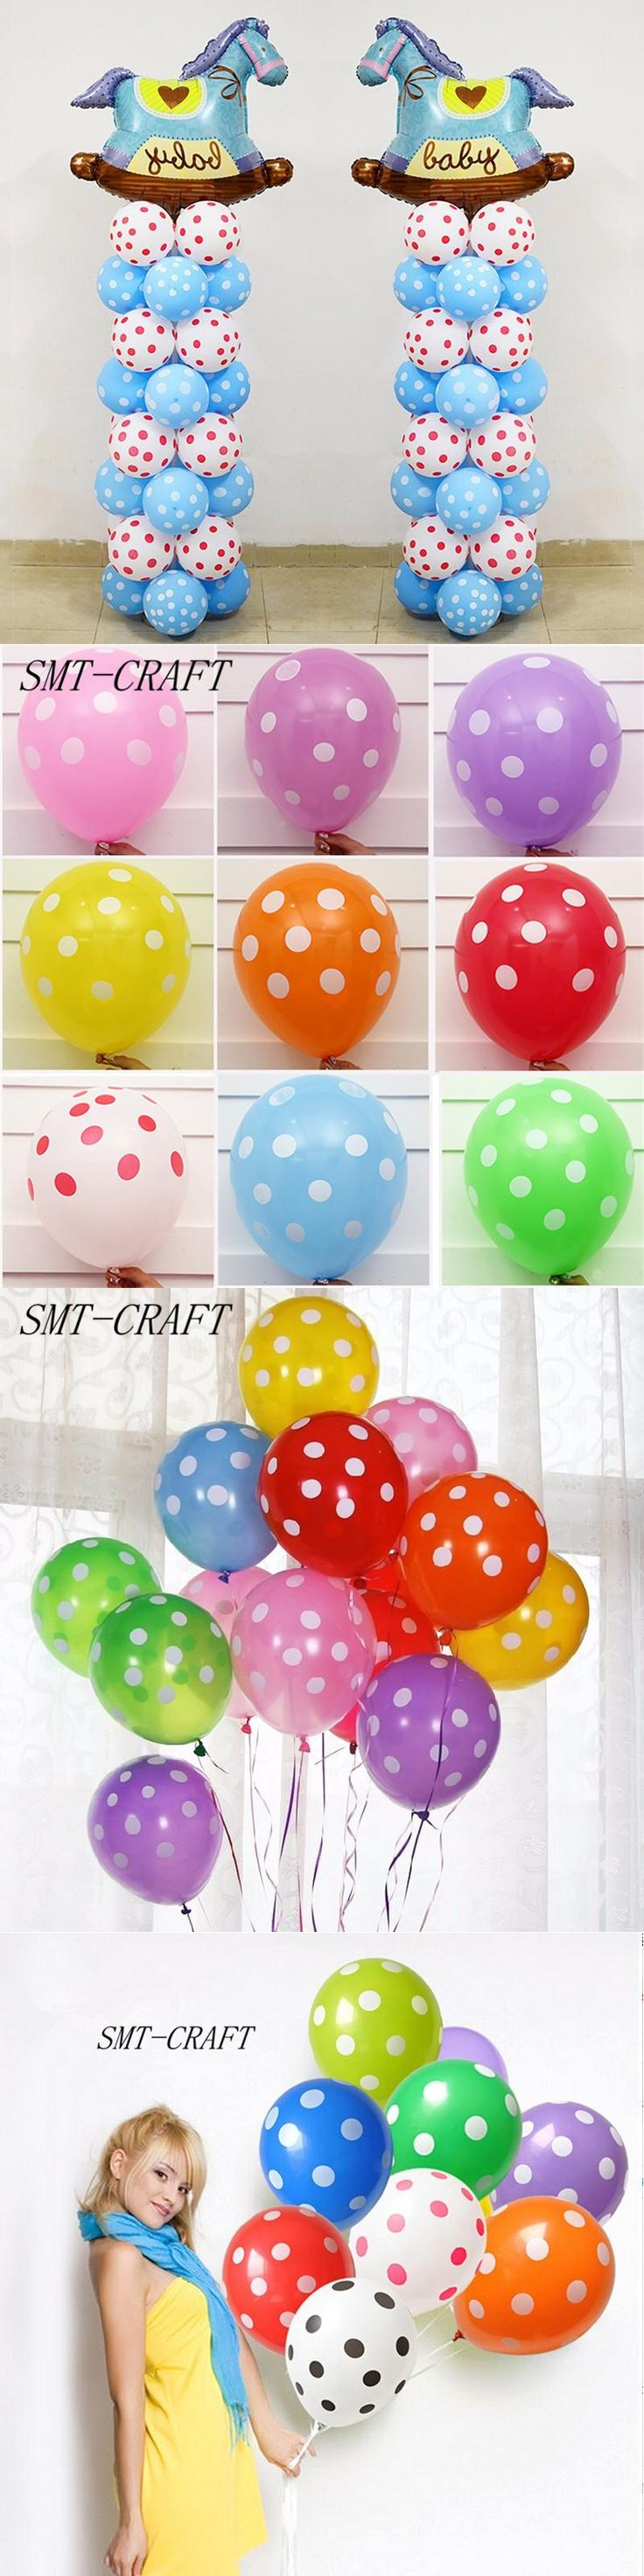 10Pcs/Lot 2.8g12inch Polka Dot Latex Balloon Inflatable Helium Air Balls For Wedding Birthday Party Decoration Balloons Toys